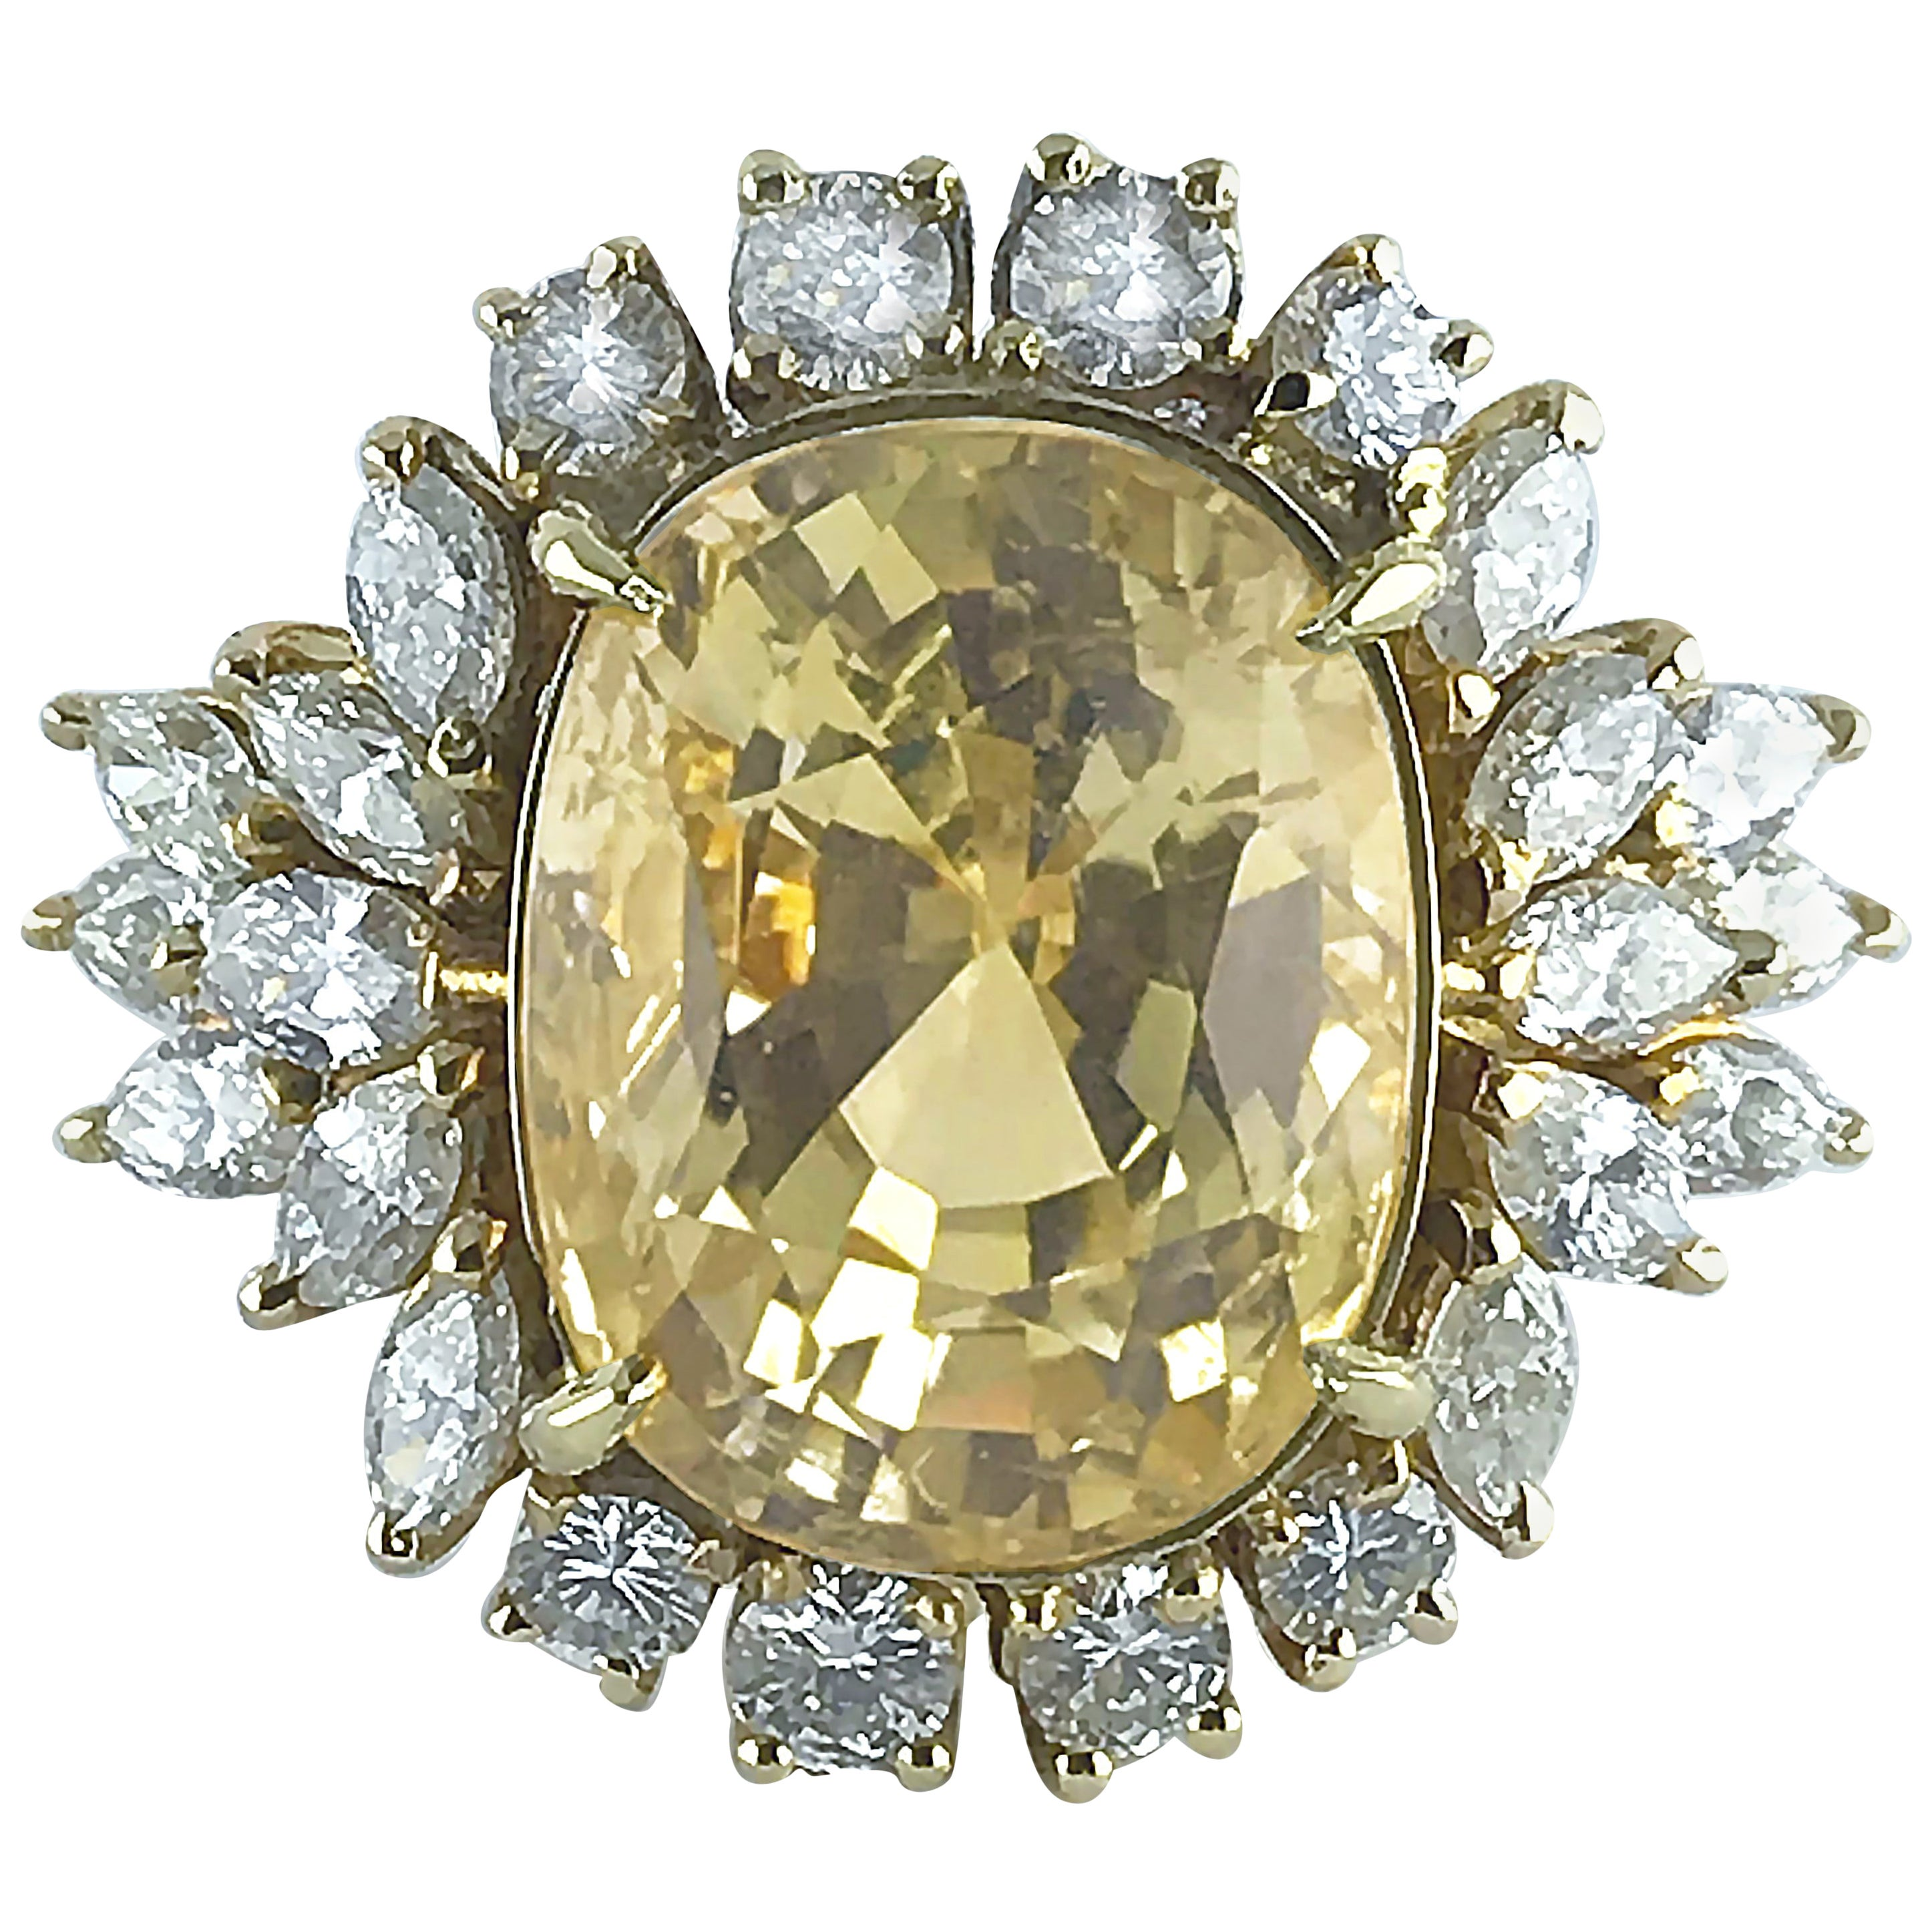 Certified Natural 16.39 Carat Cushion Cut Yellow Sapphire and Diamond Ring